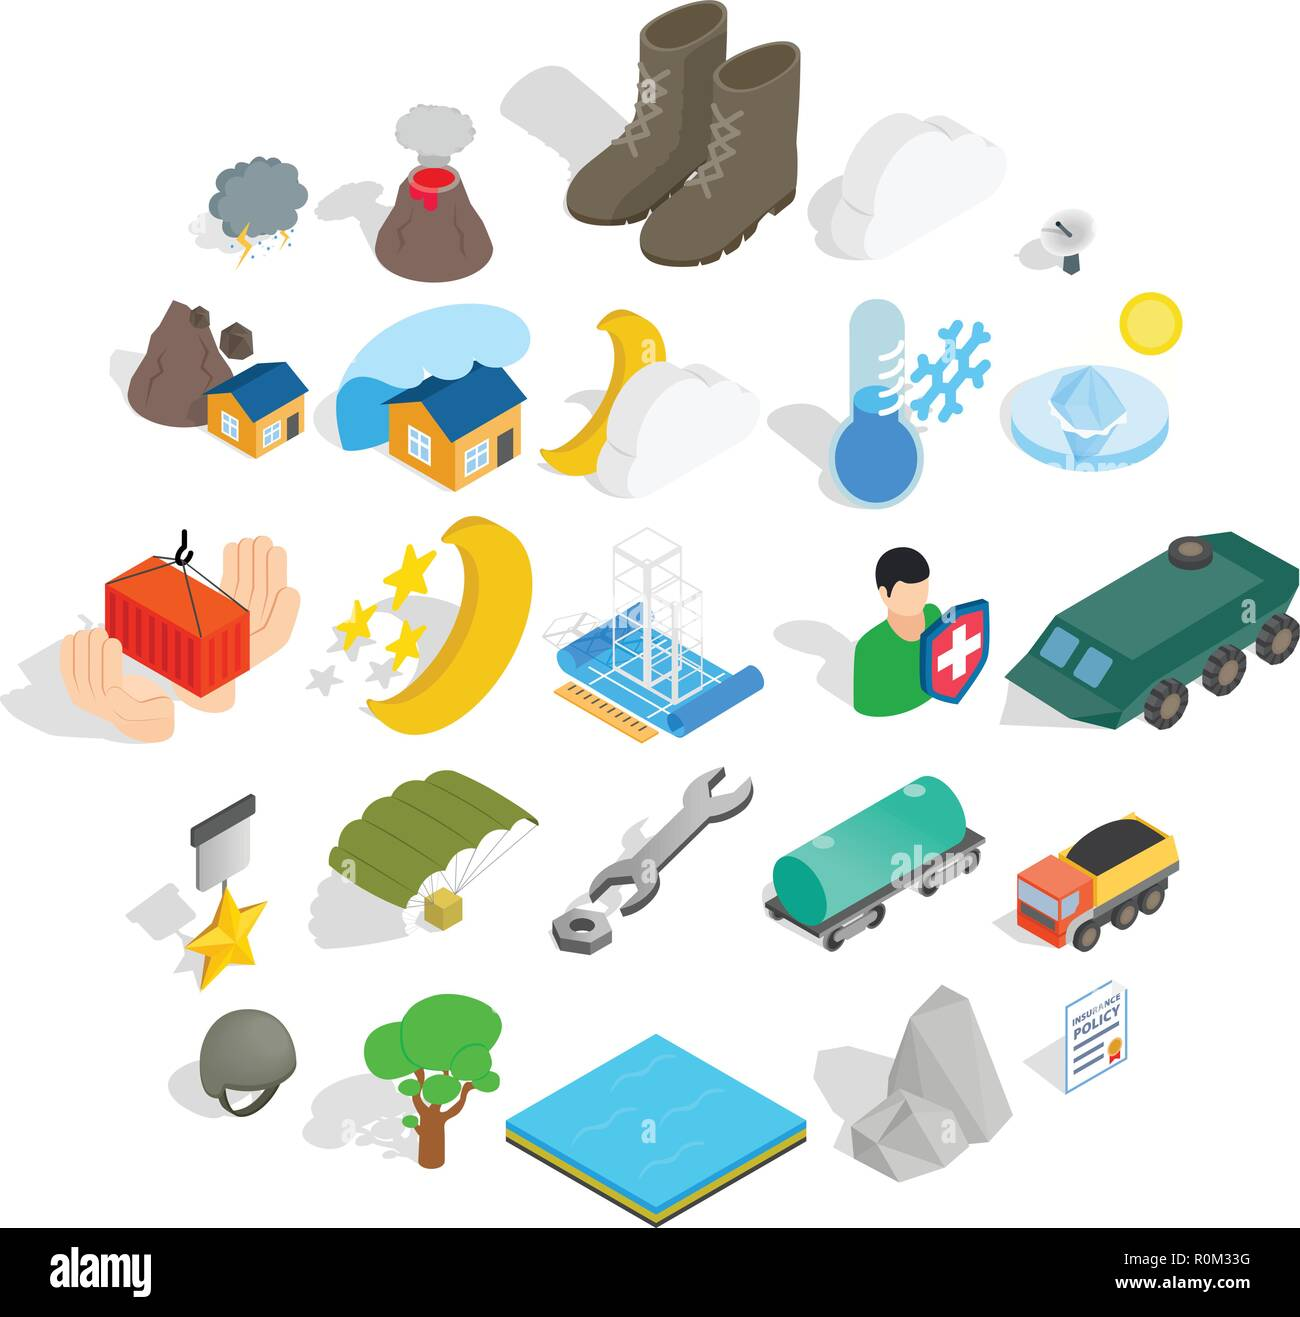 Inflammable icons set, isometric style - Stock Image